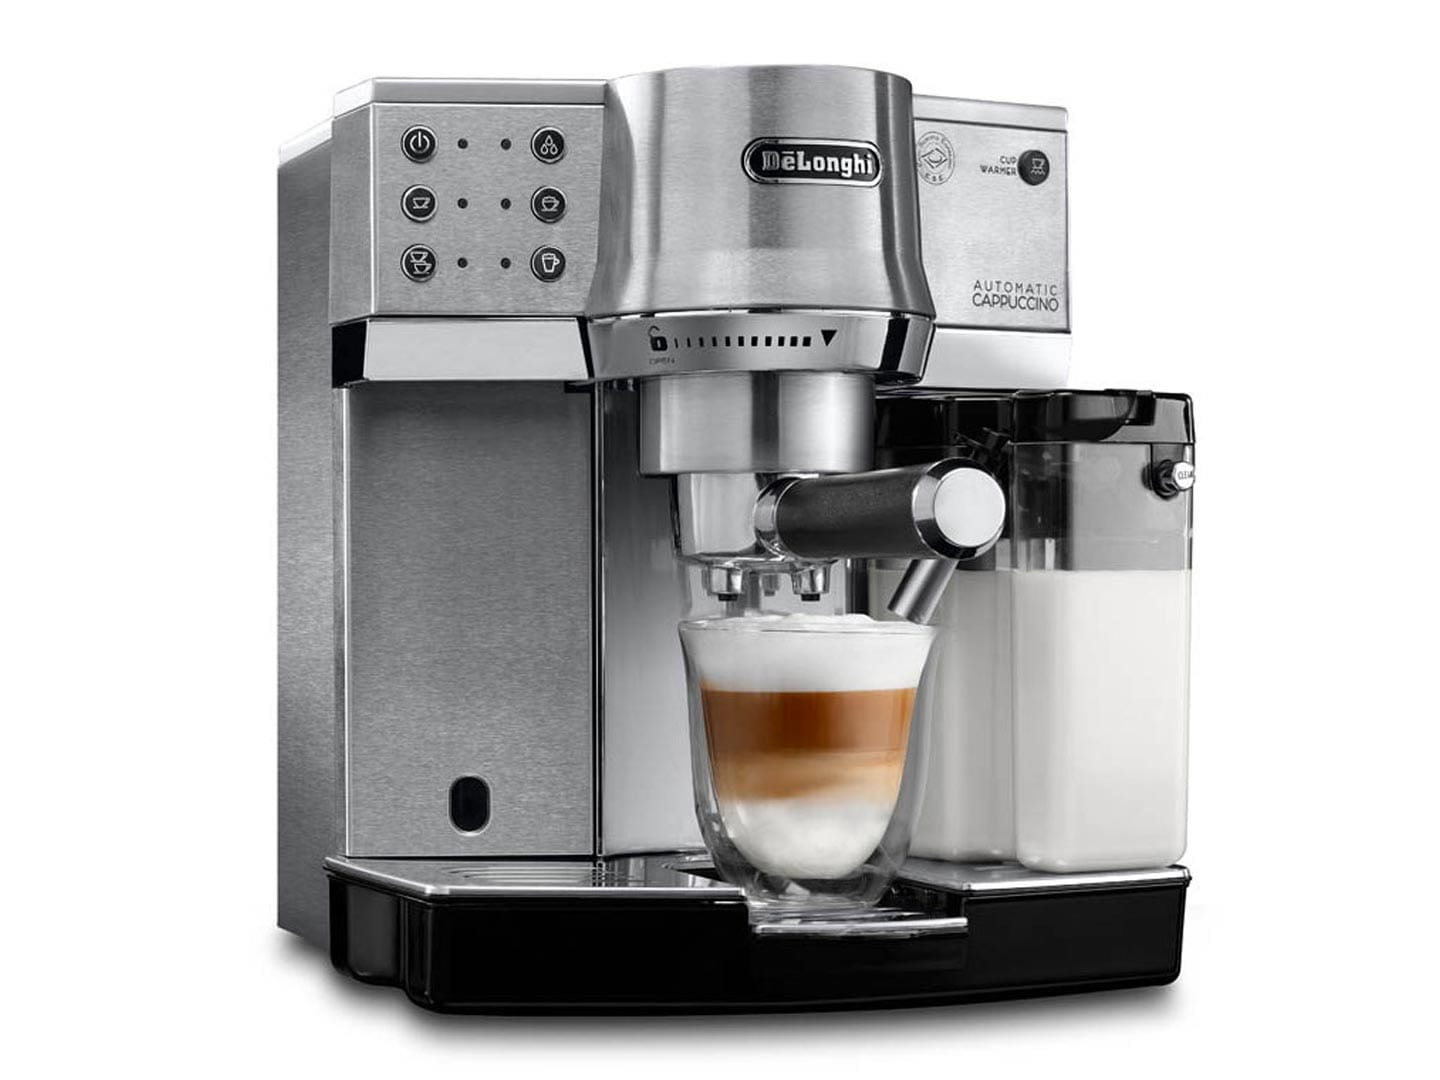 Uncategorized Delonghi Kitchen Appliances delonghi ec860 pump espresso cappuccino machine